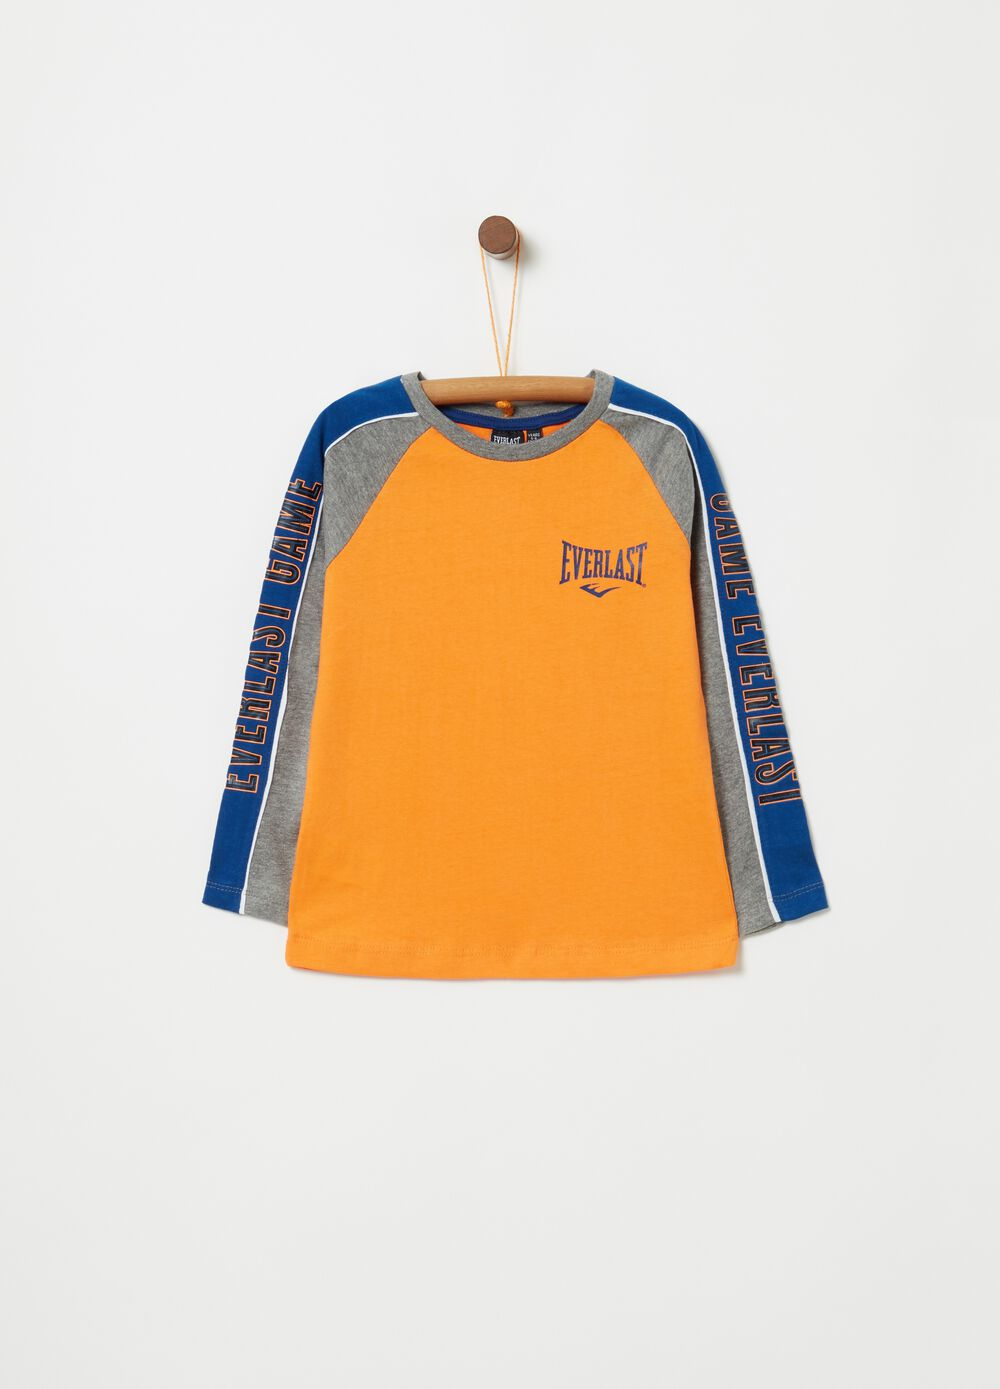 Two-tone crew neck T-shirt with Everlast print